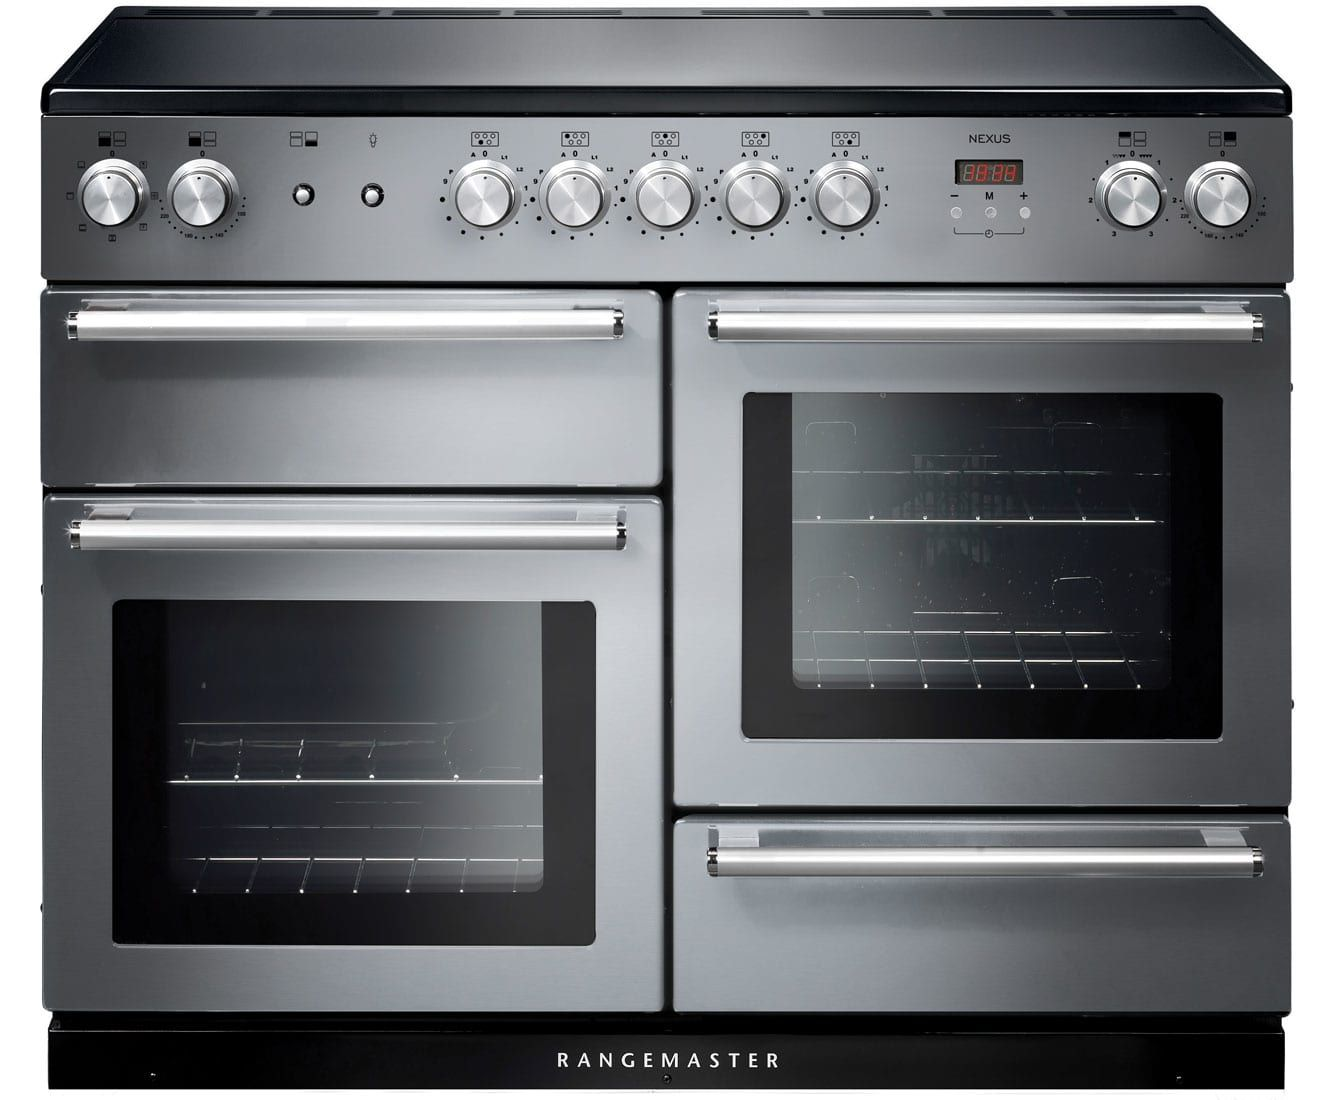 rangemaster nexus nex110eiss c 110cm electric range cooker. Black Bedroom Furniture Sets. Home Design Ideas